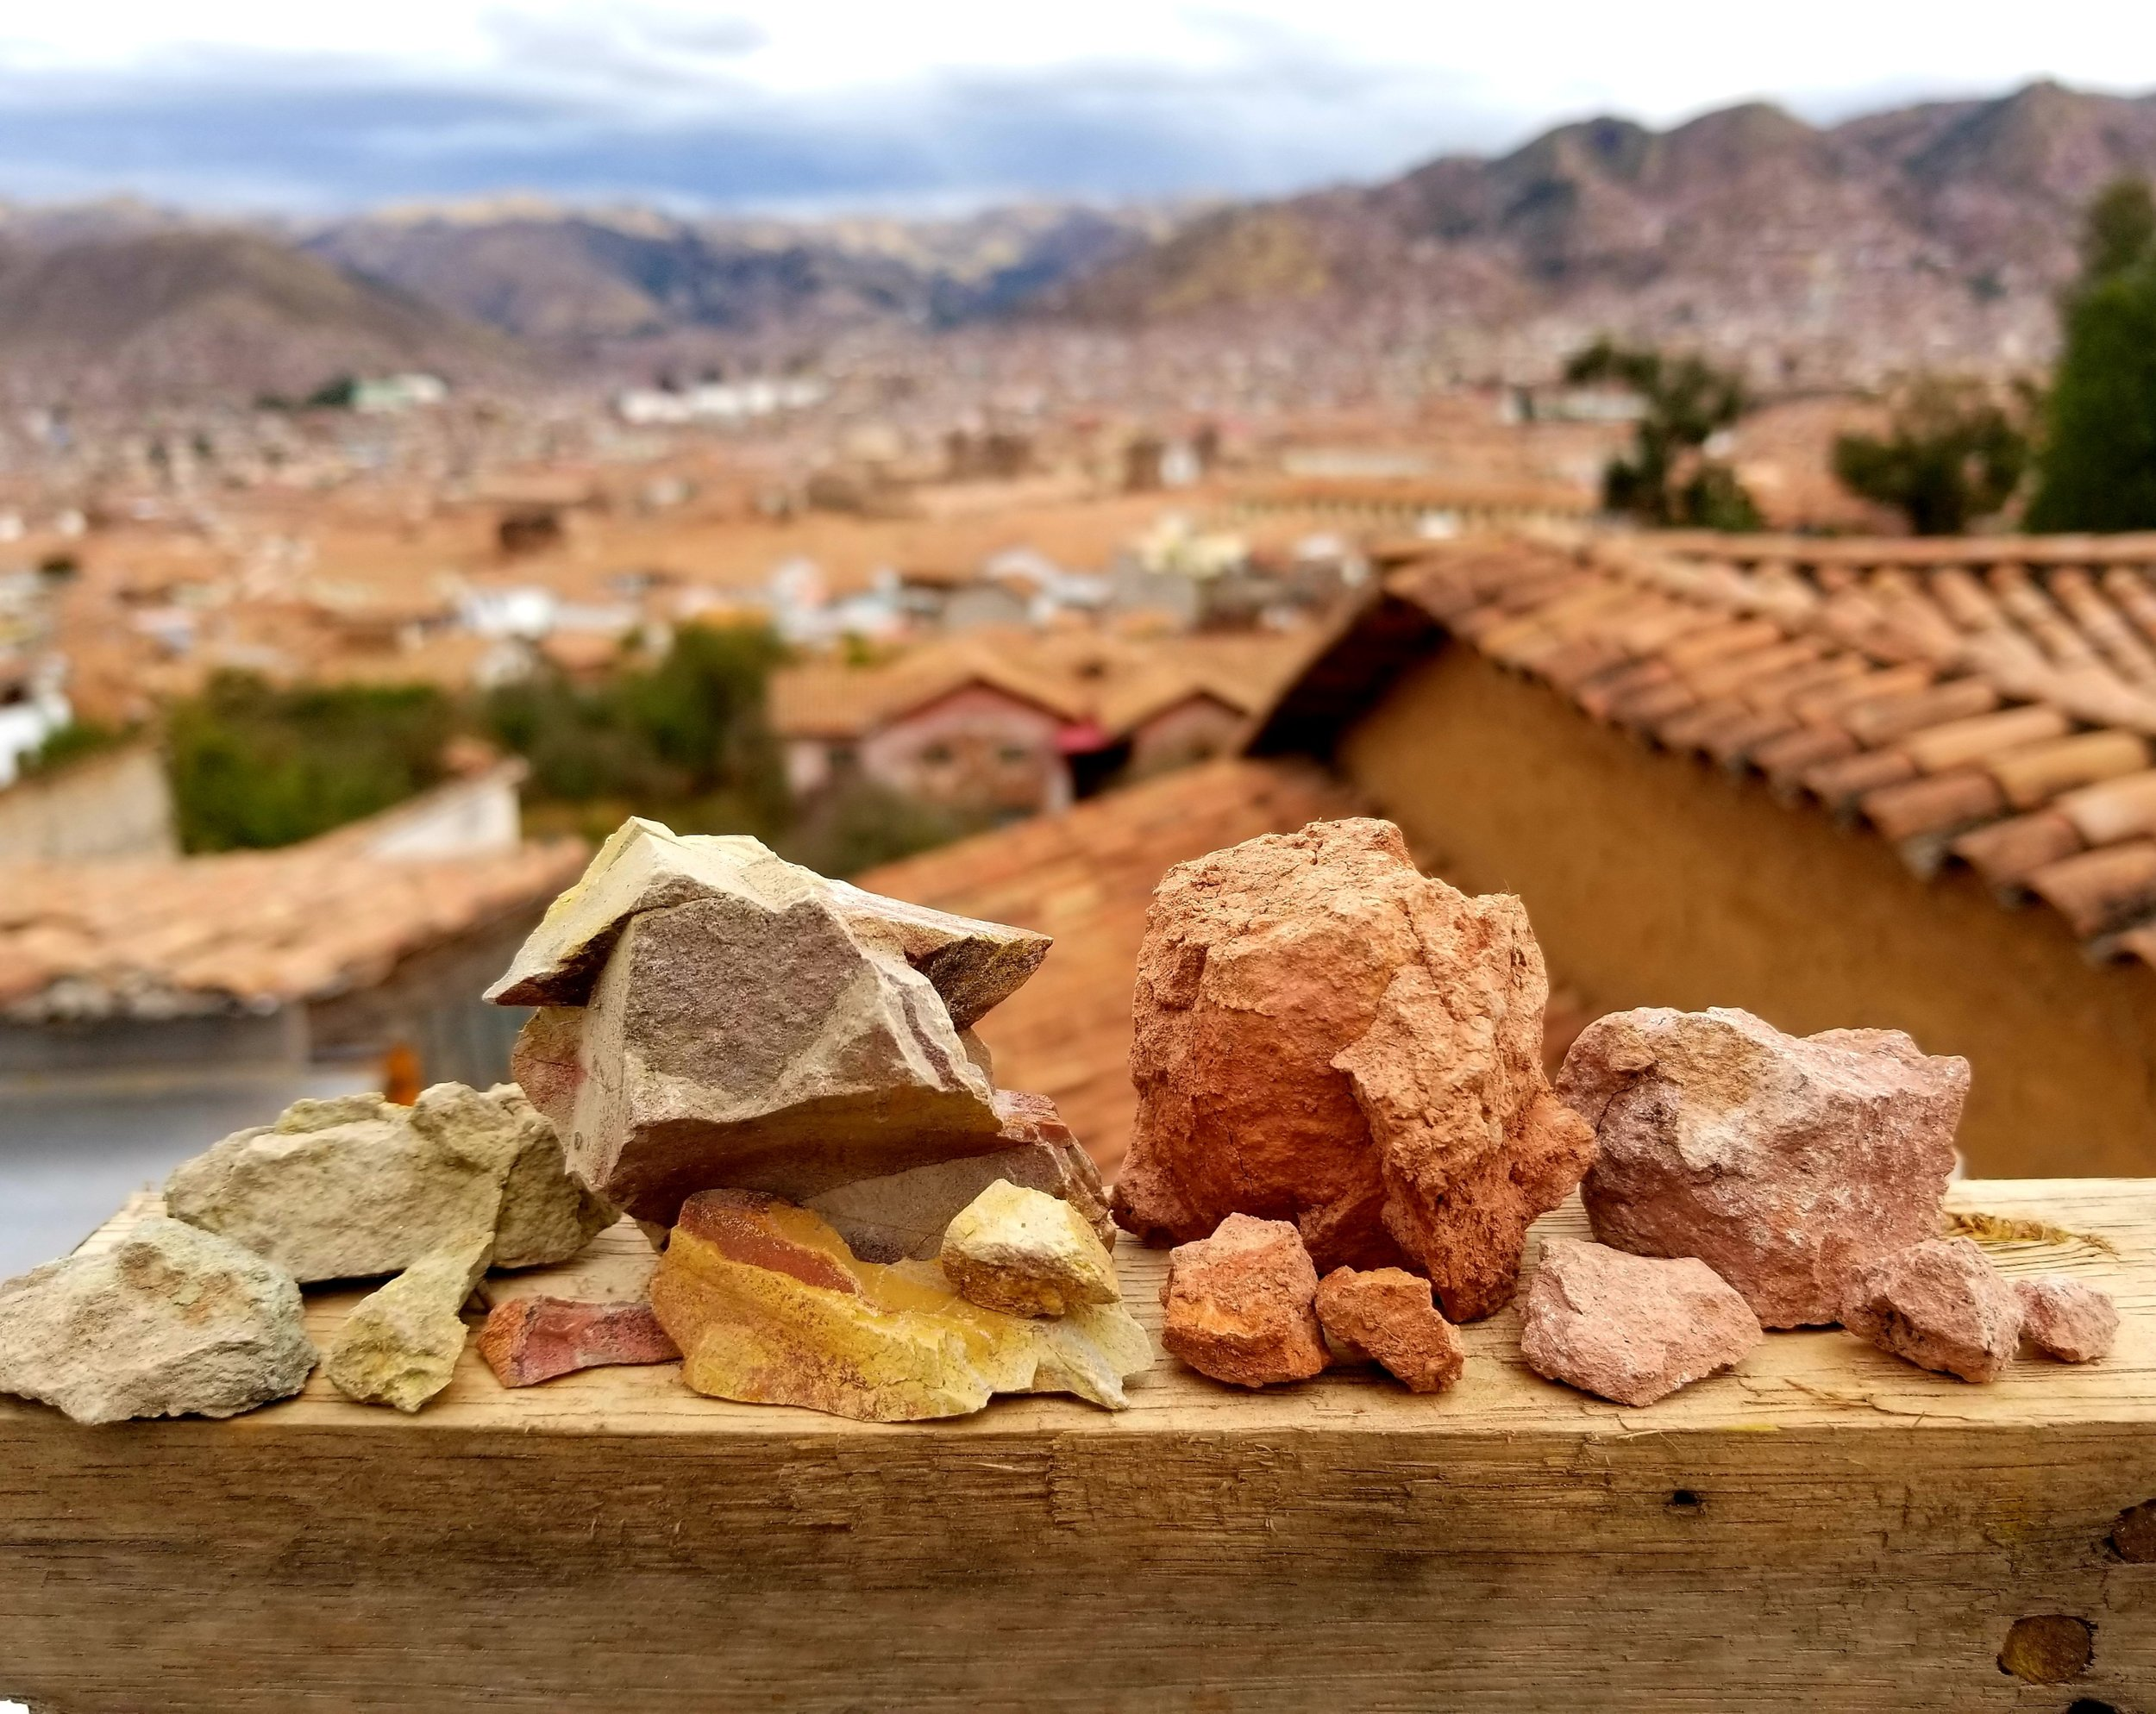 Stones collected along the route to Cusco, itching to have their pigments ground.